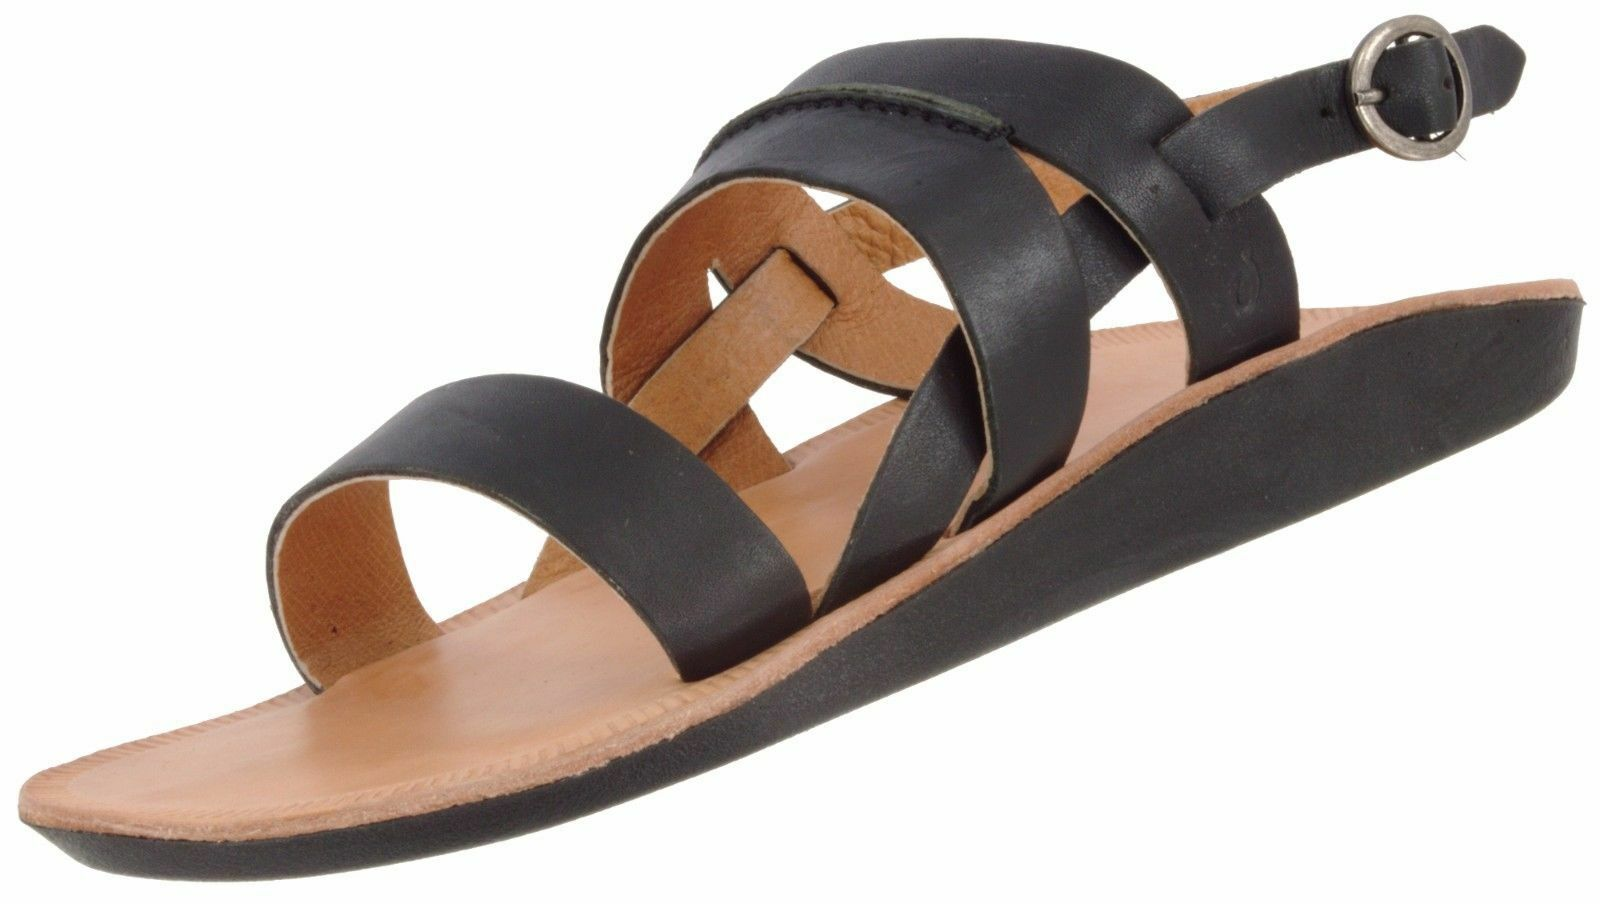 OLUKAI  LEOA WOMEN'S LEATHER STRAPPY OPEN TOE SANDALS W/ STRAP 11 W